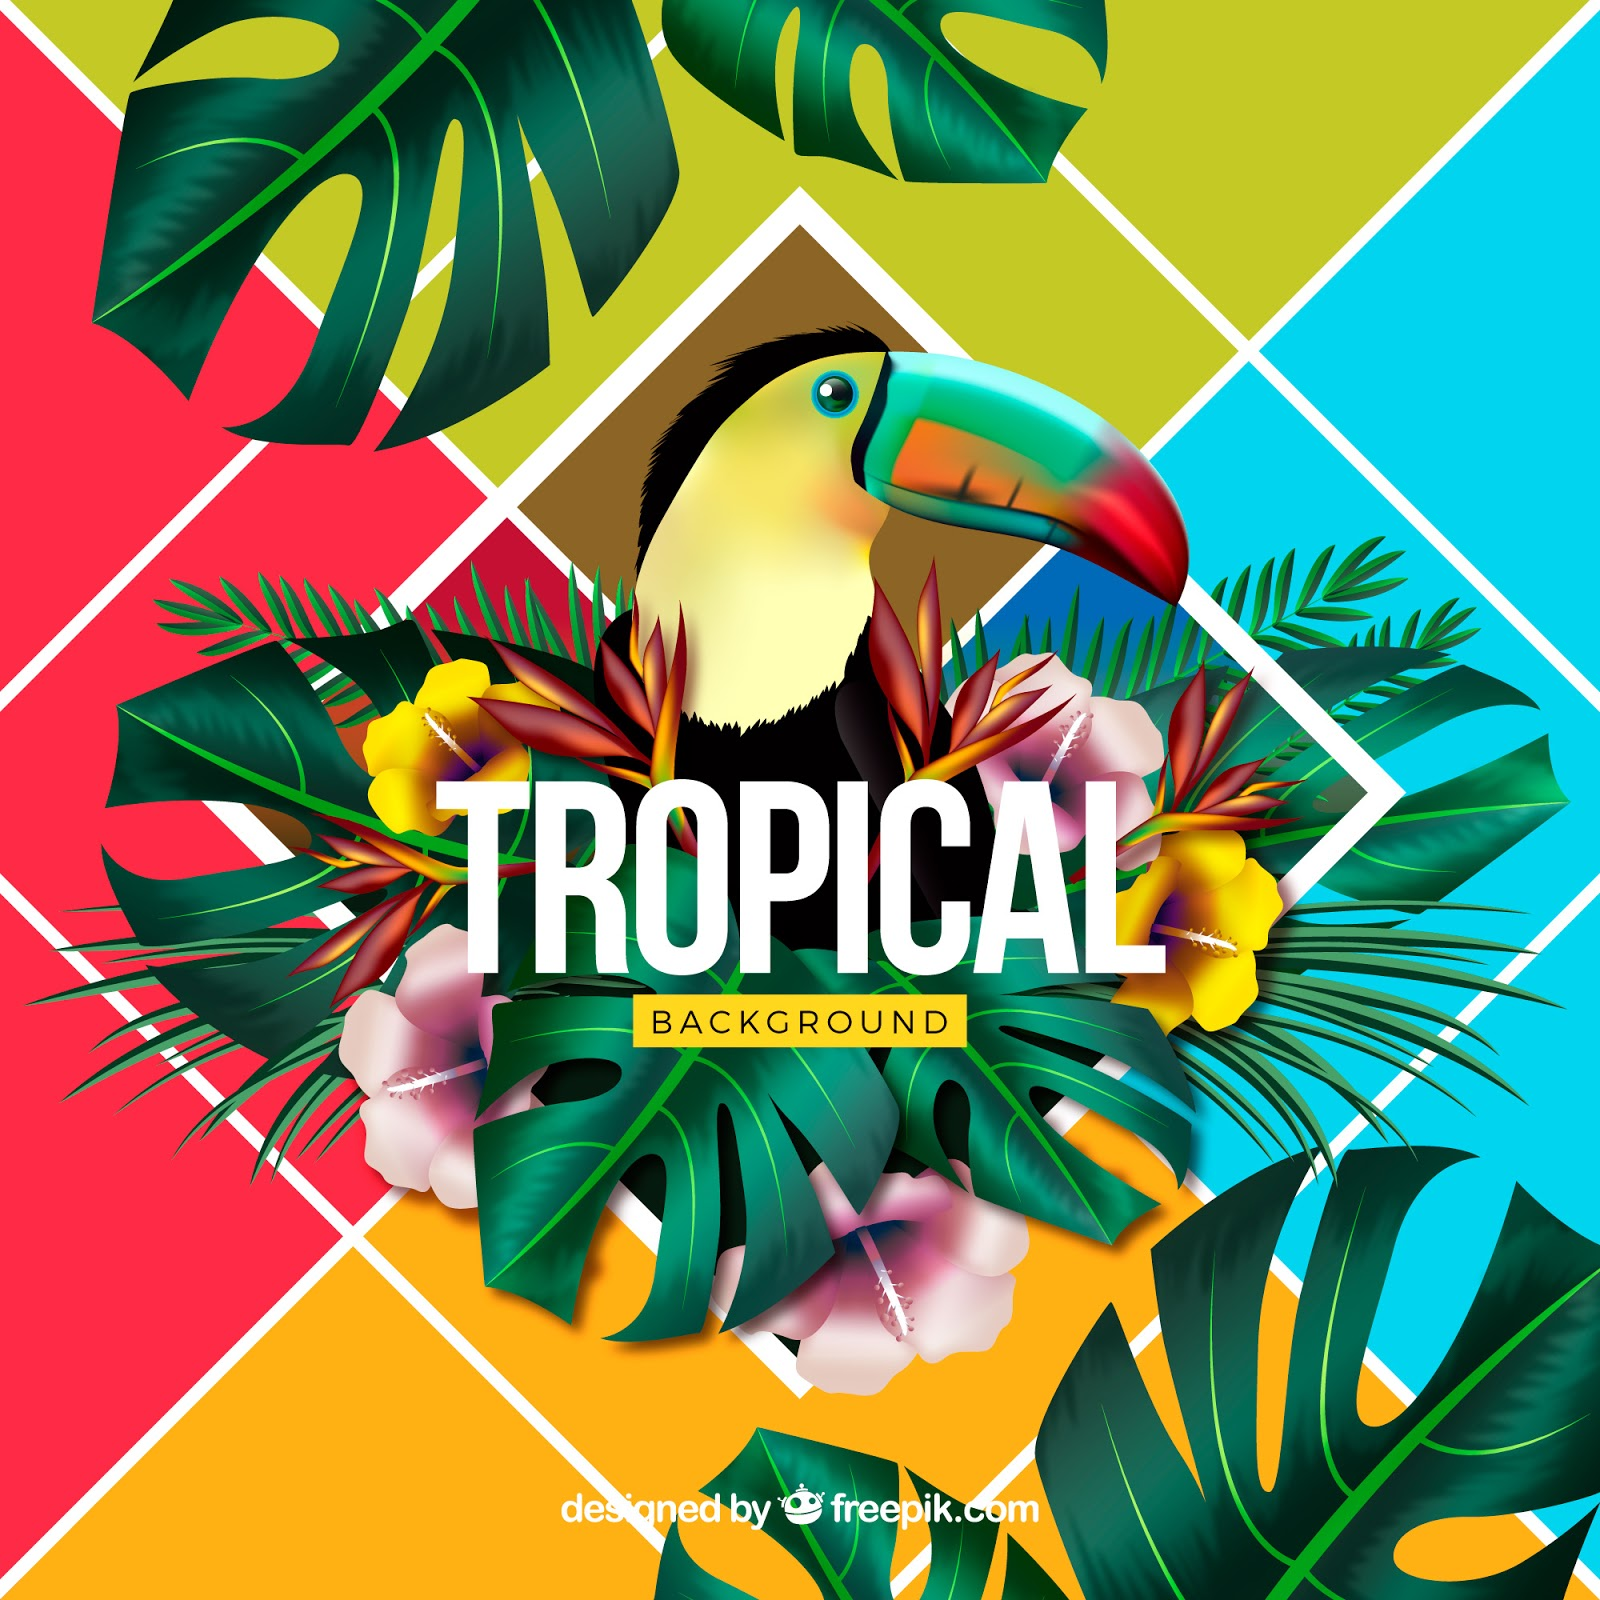 Colorful Tropical Background With Realistic Design Free Download Vector CDR, AI, EPS and PNG Formats